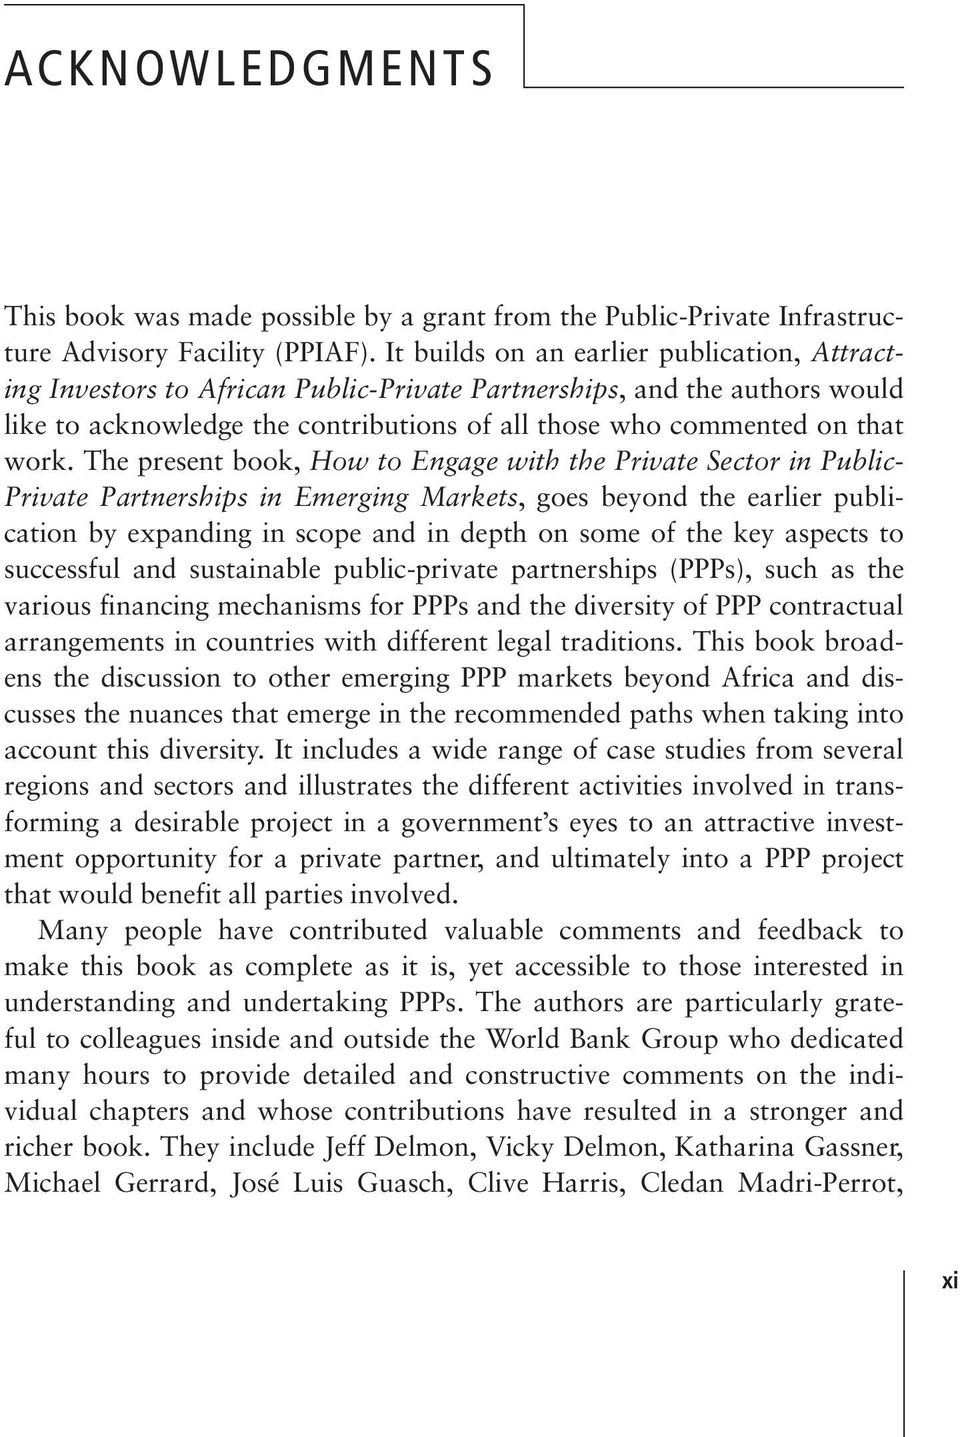 The present book, How to Engage with the Private Sector in Public- Private Partnerships in Emerging Markets, goes beyond the earlier publication by expanding in scope and in depth on some of the key